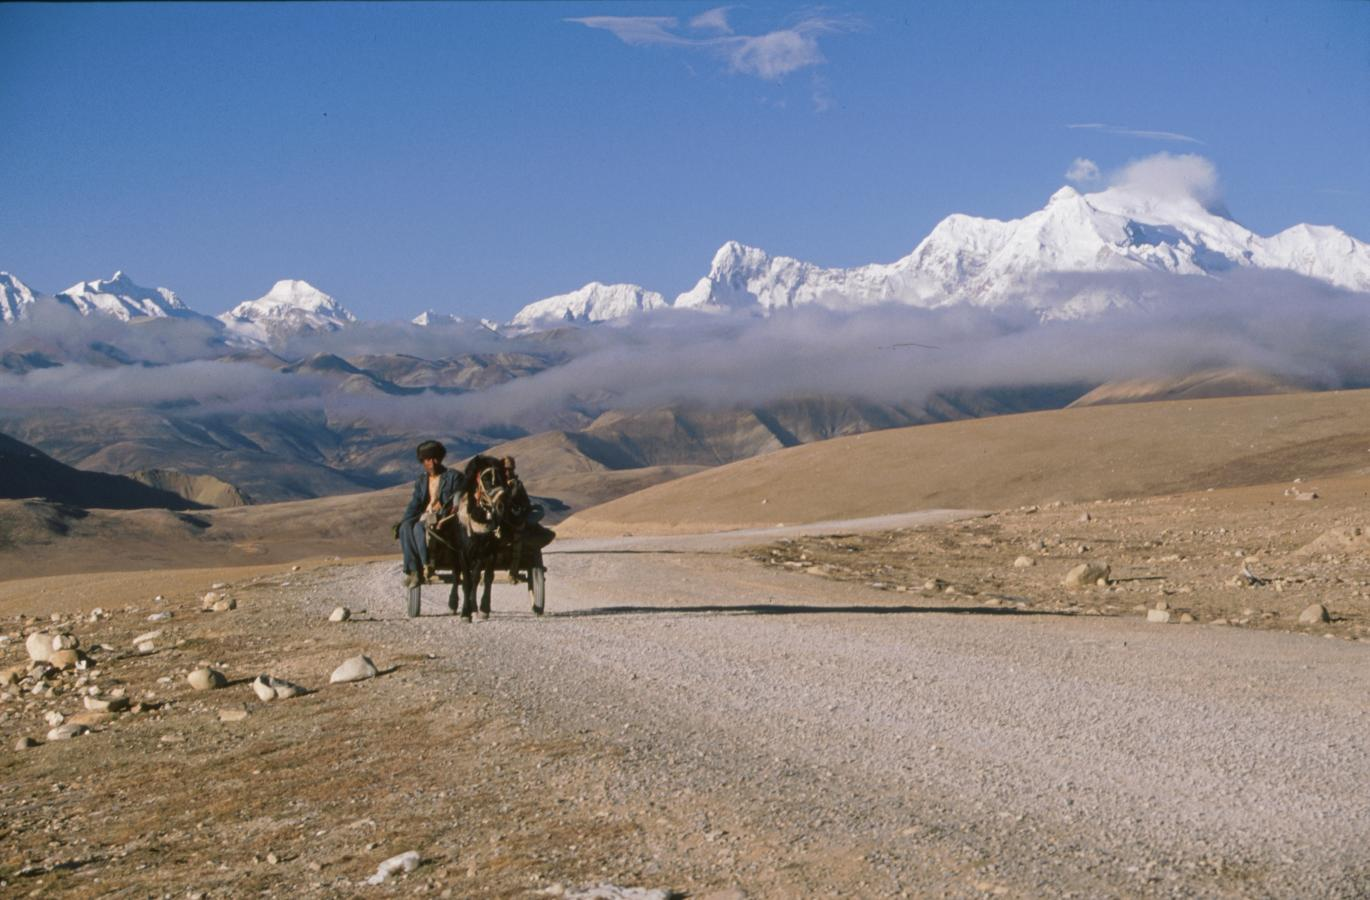 mountain-pass-of-lhakpa-la-3-tibet-2000-tibet-2000